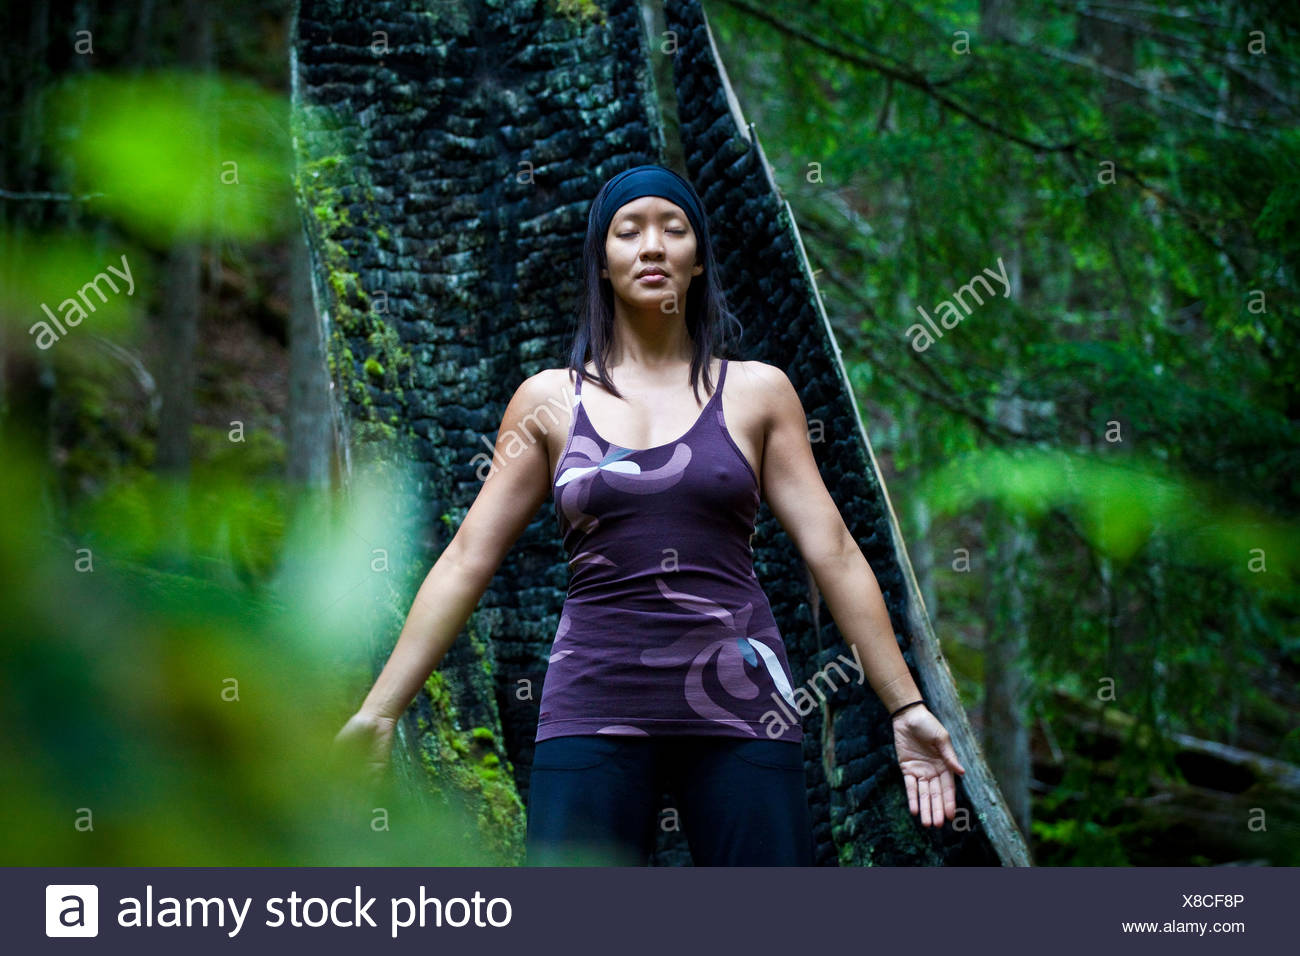 A woman practices yoga near the Clearwater River, Clearwater, British Columbia, Canada - Stock Image